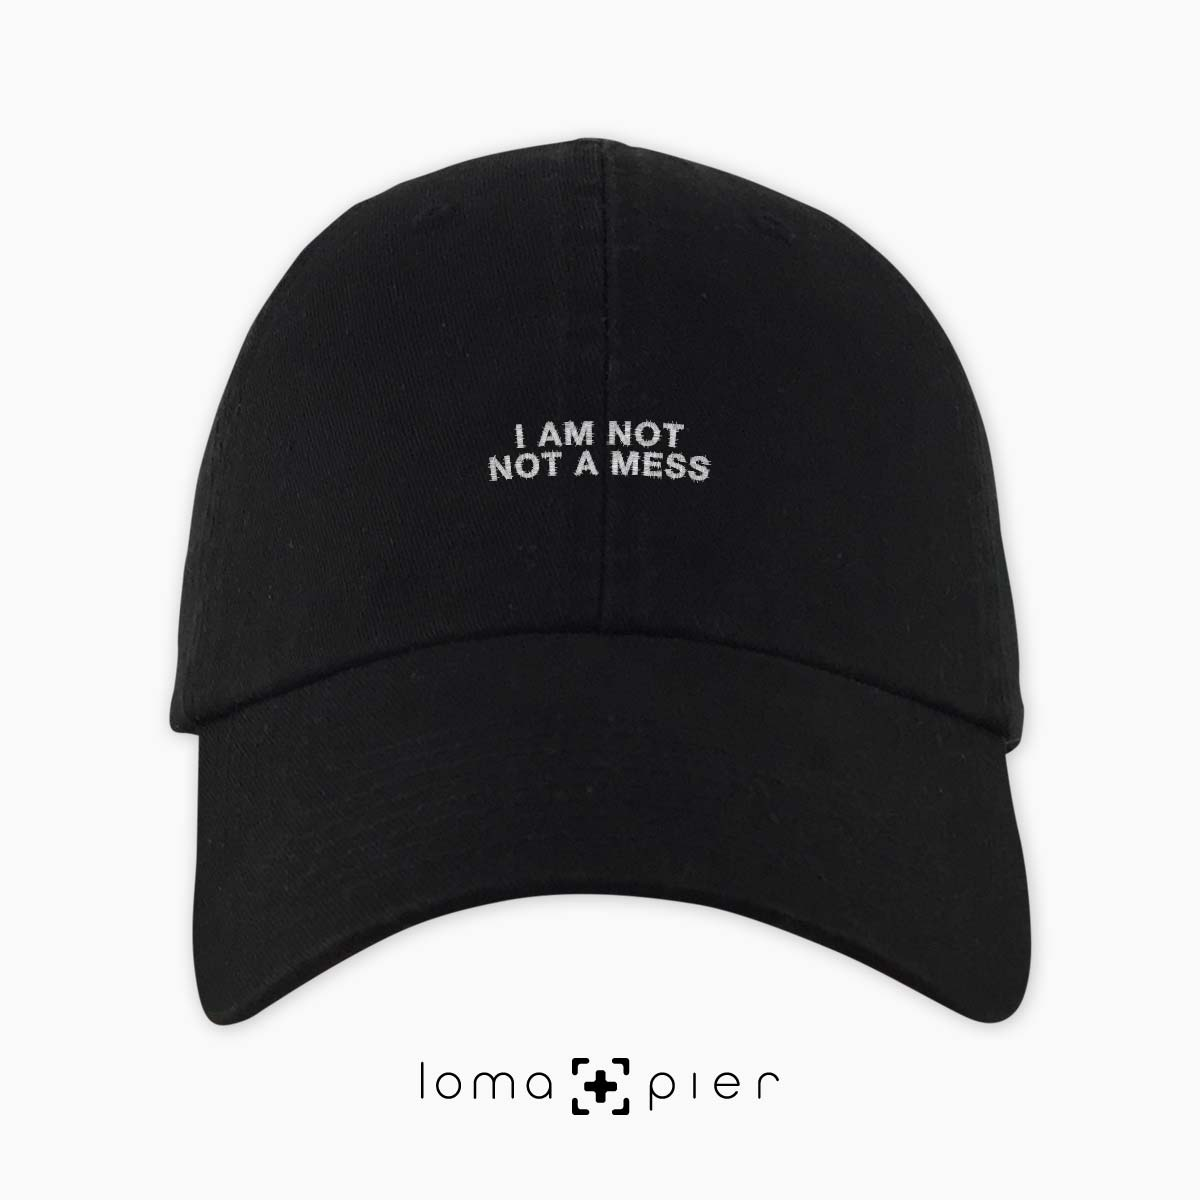 I AM NOT NOT A MESS funny dad hat by loma+pier hat store